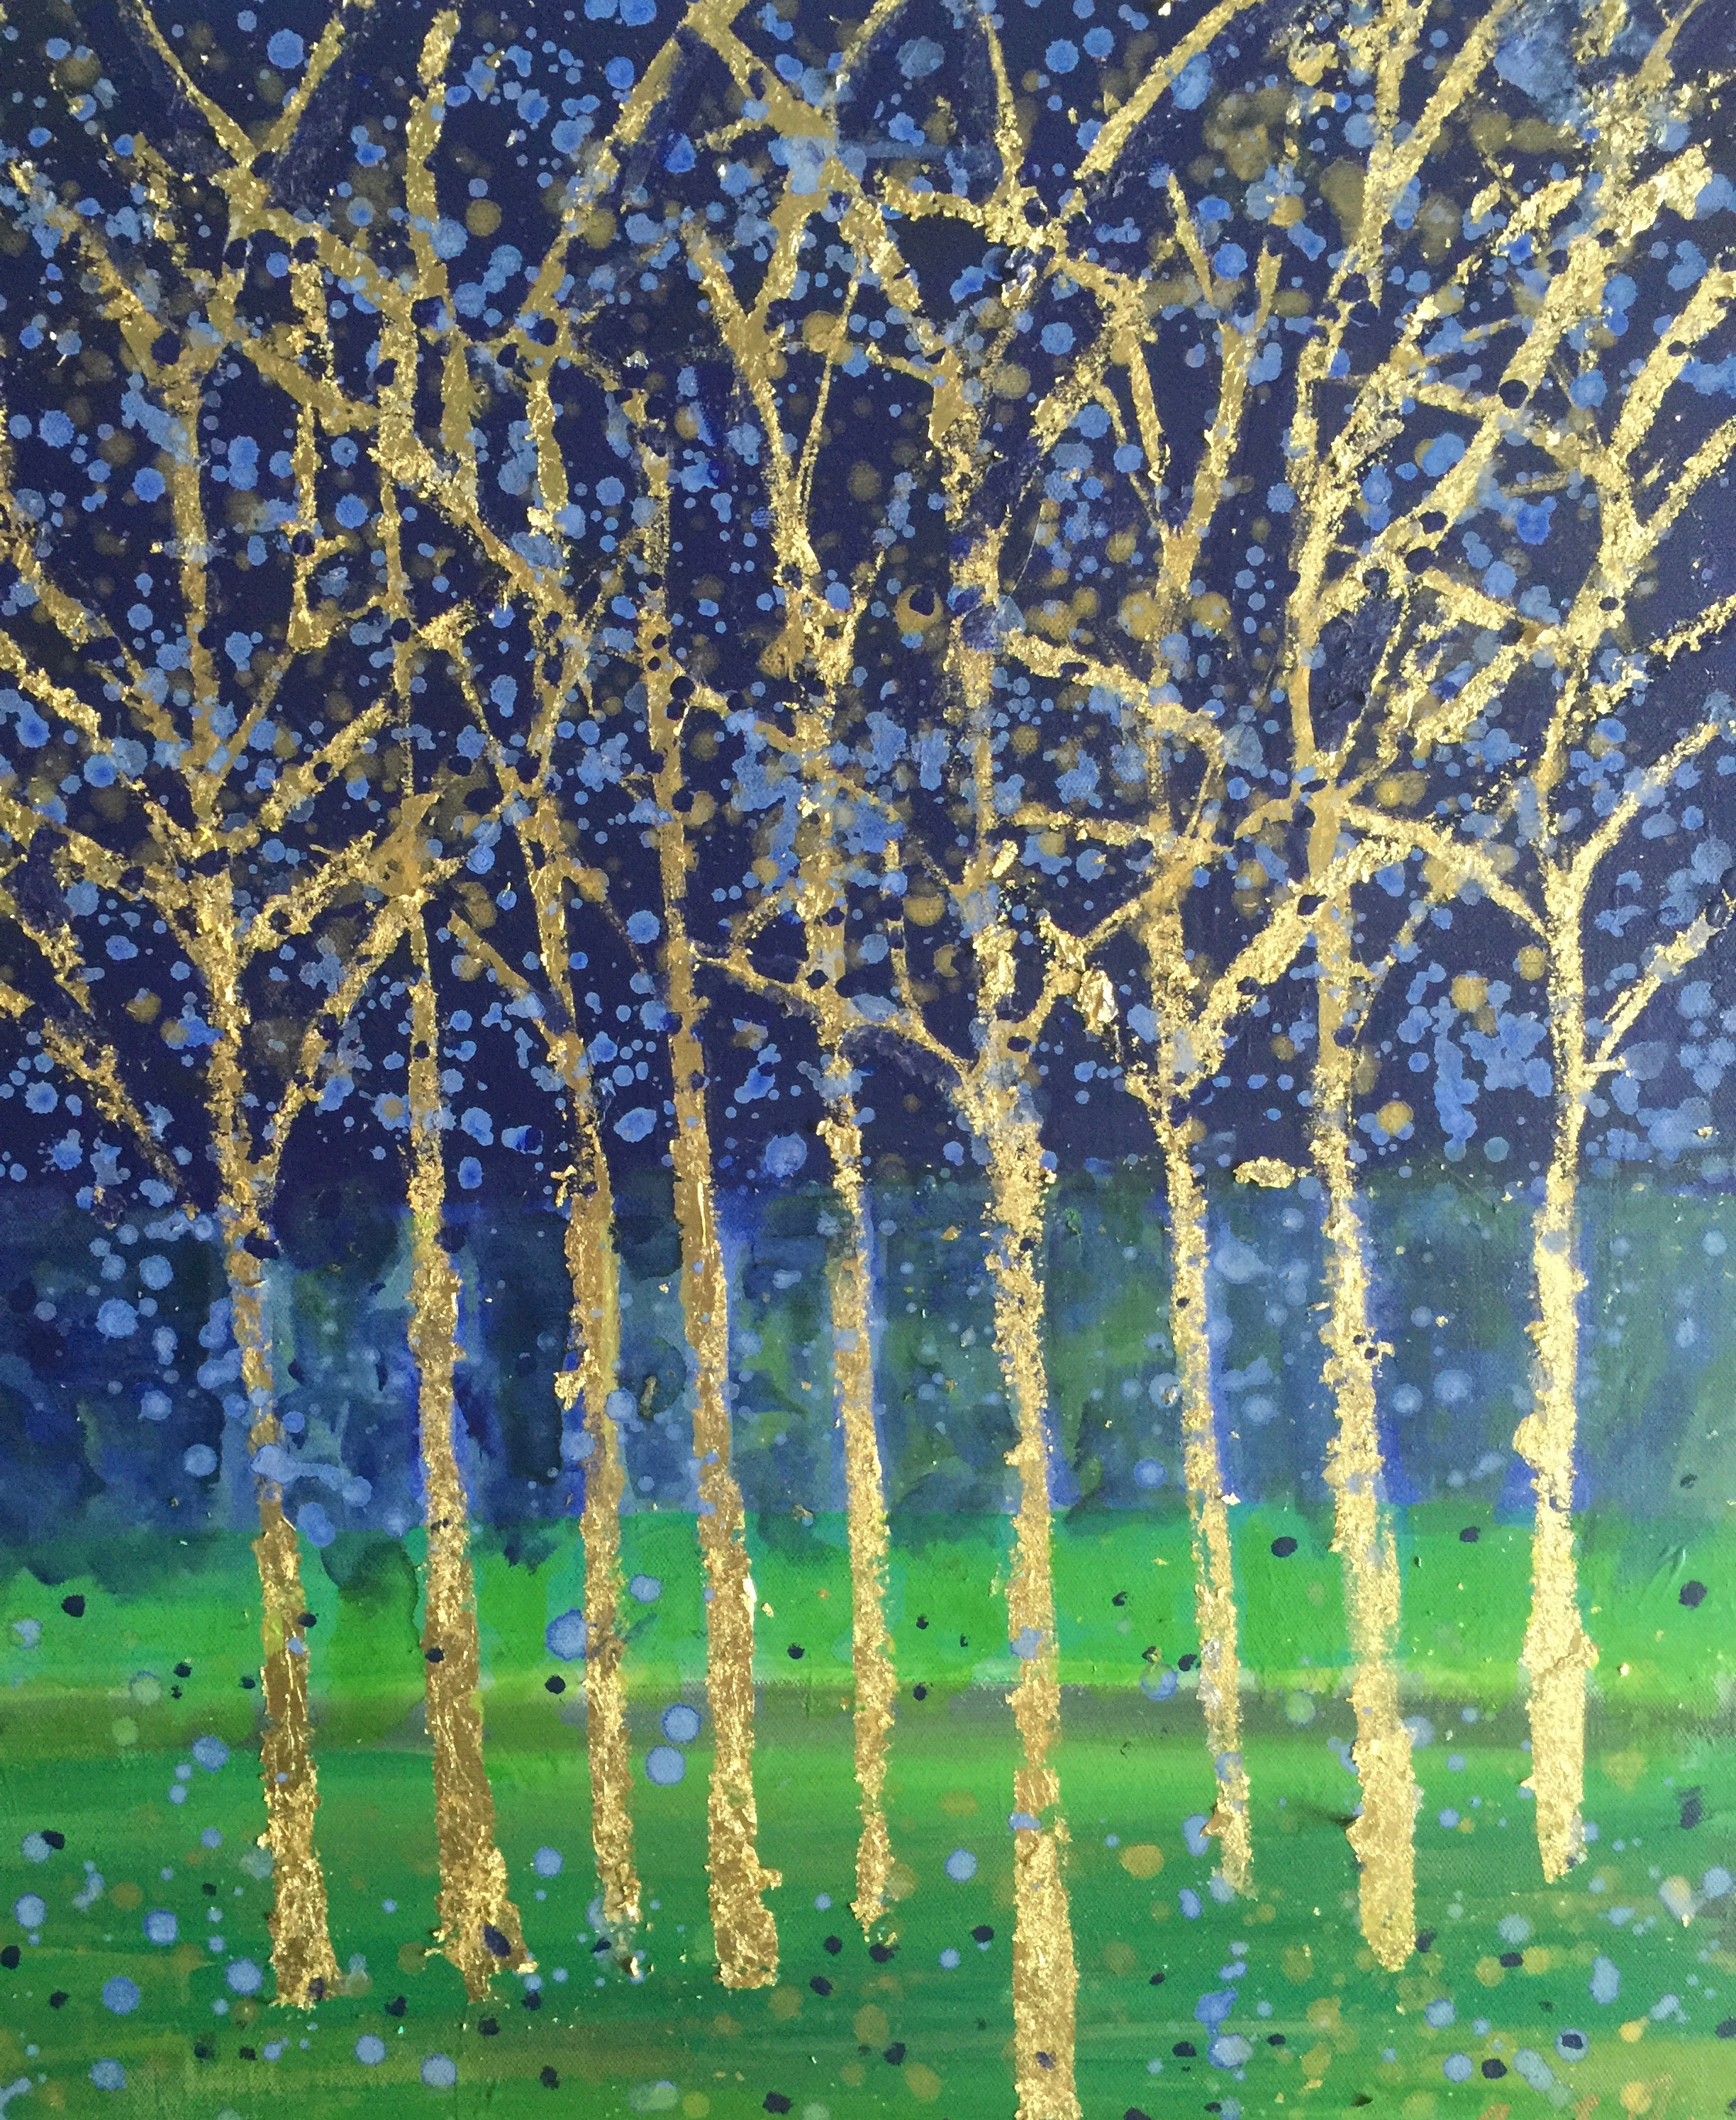 Title: Blue Forest